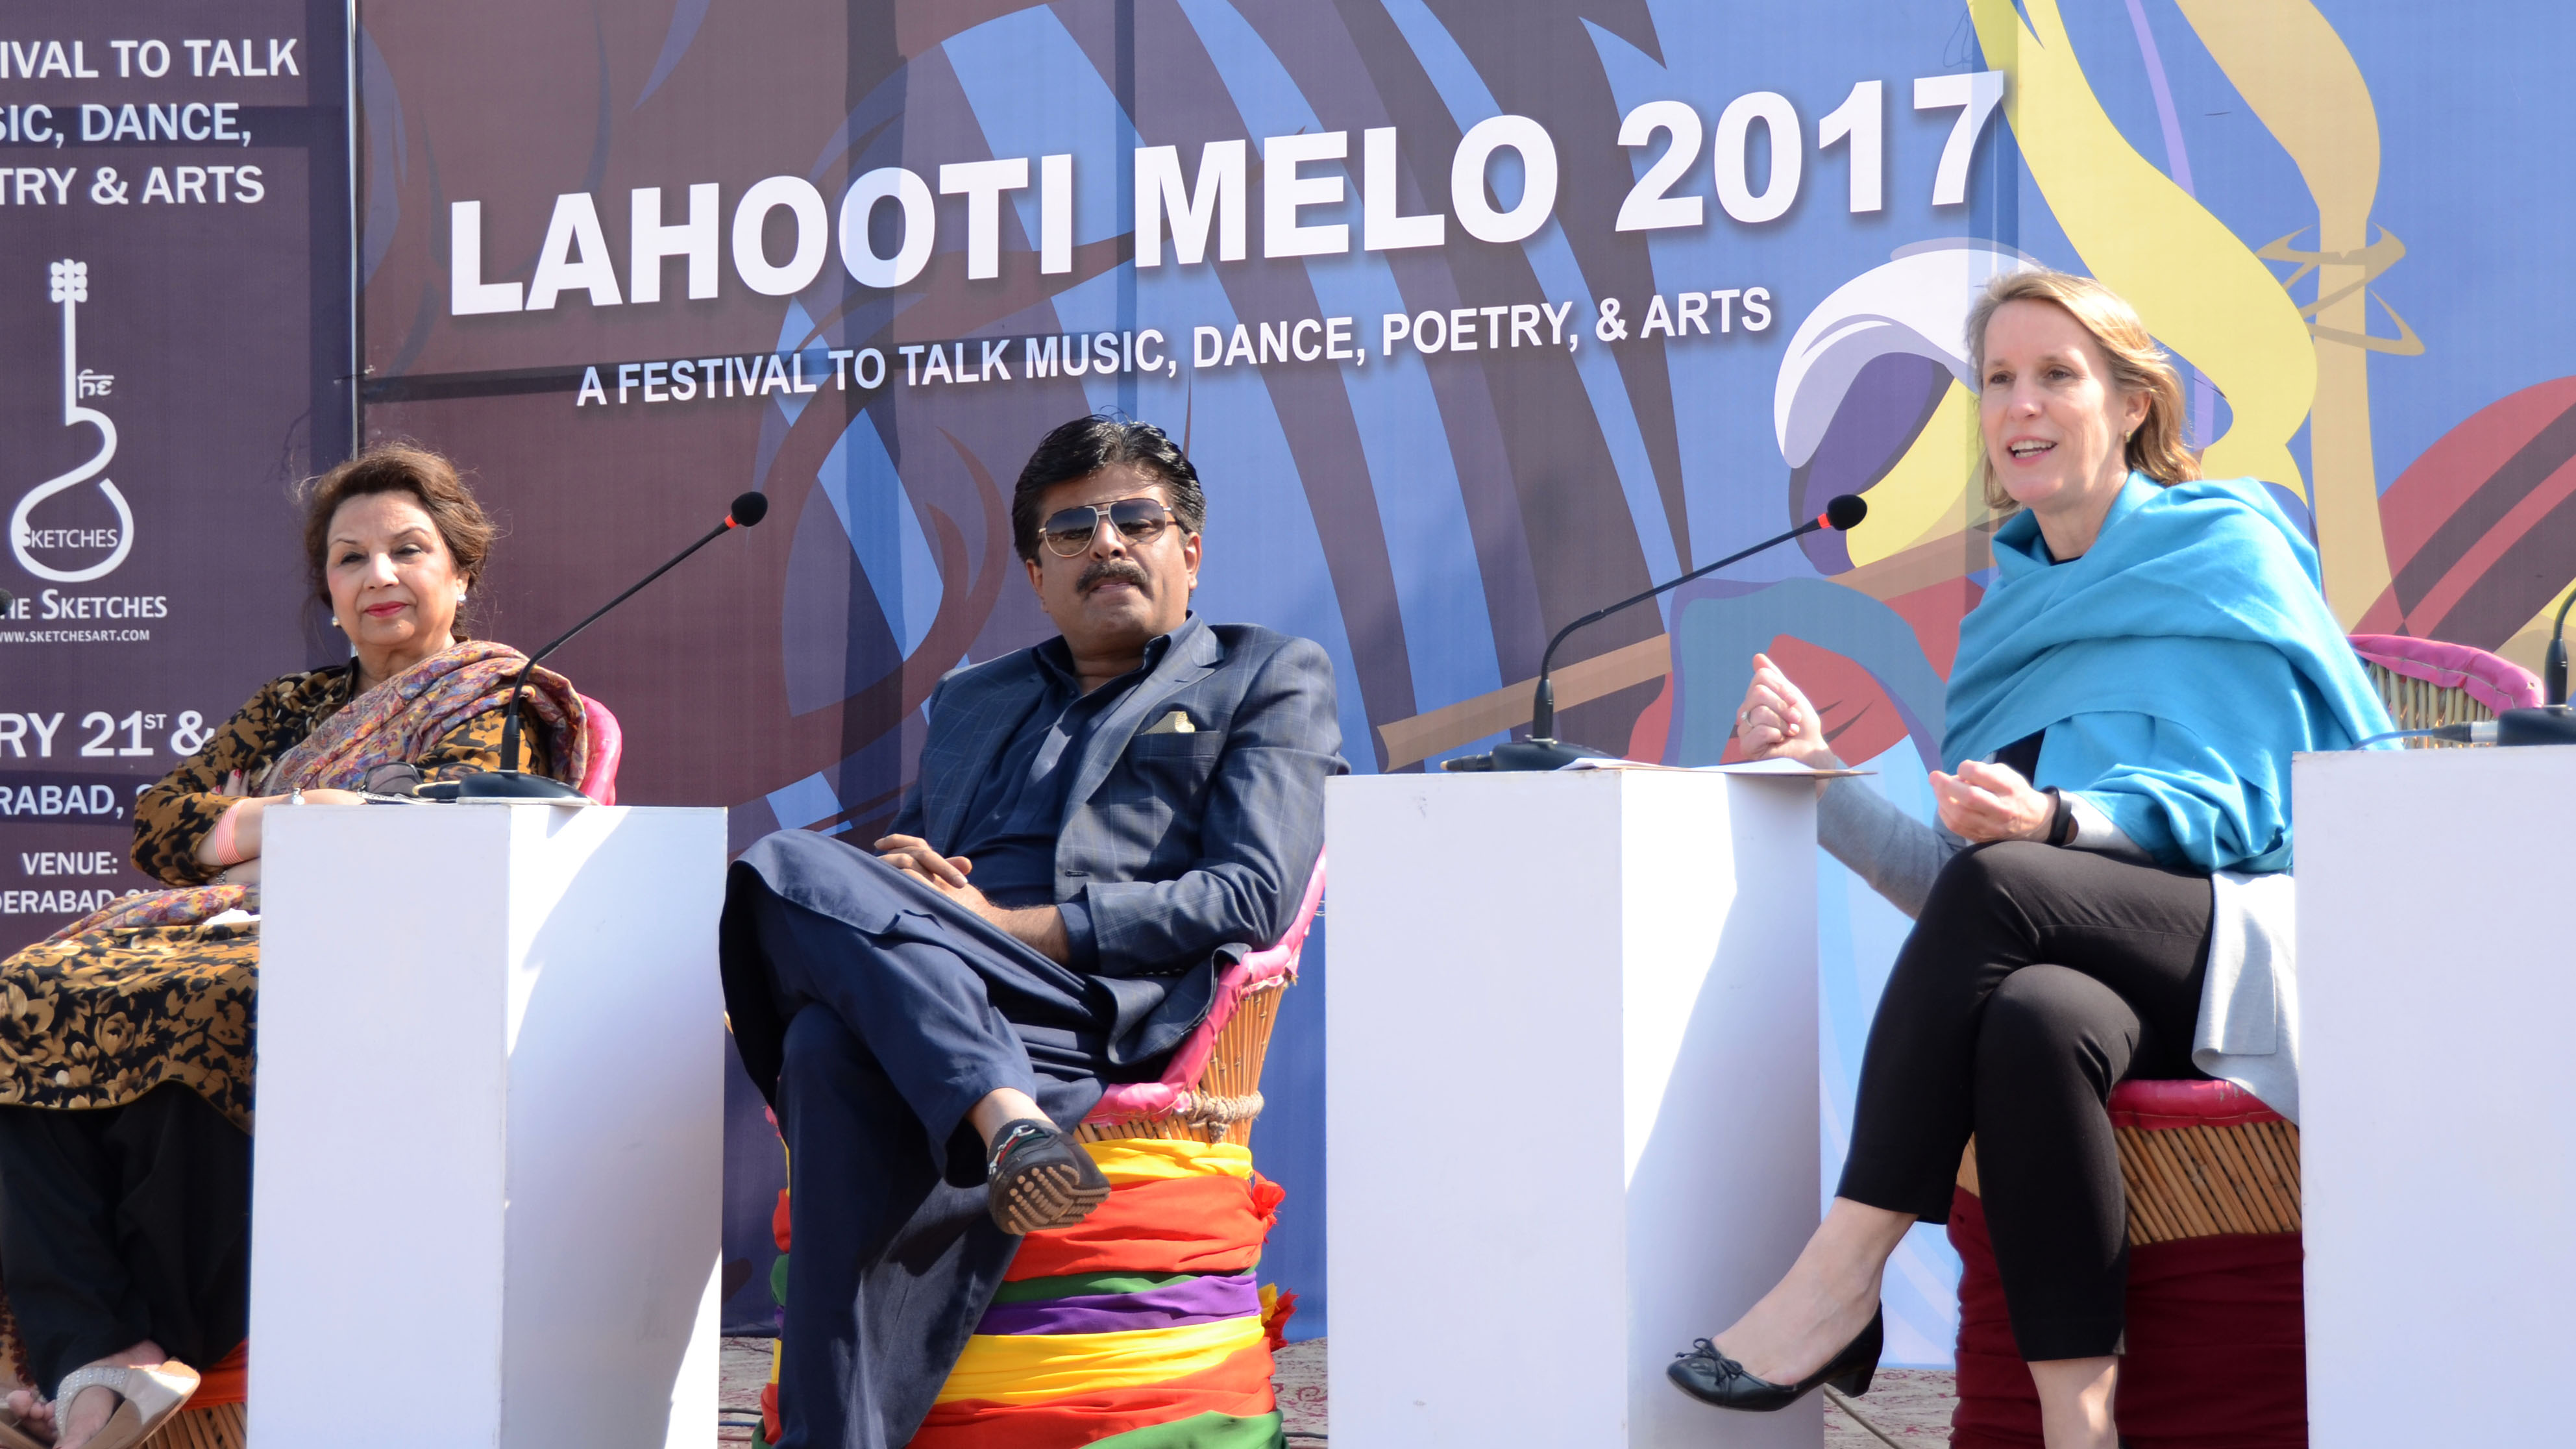 US Consul General Inaugurates Lahooti Melo in Hyderabad